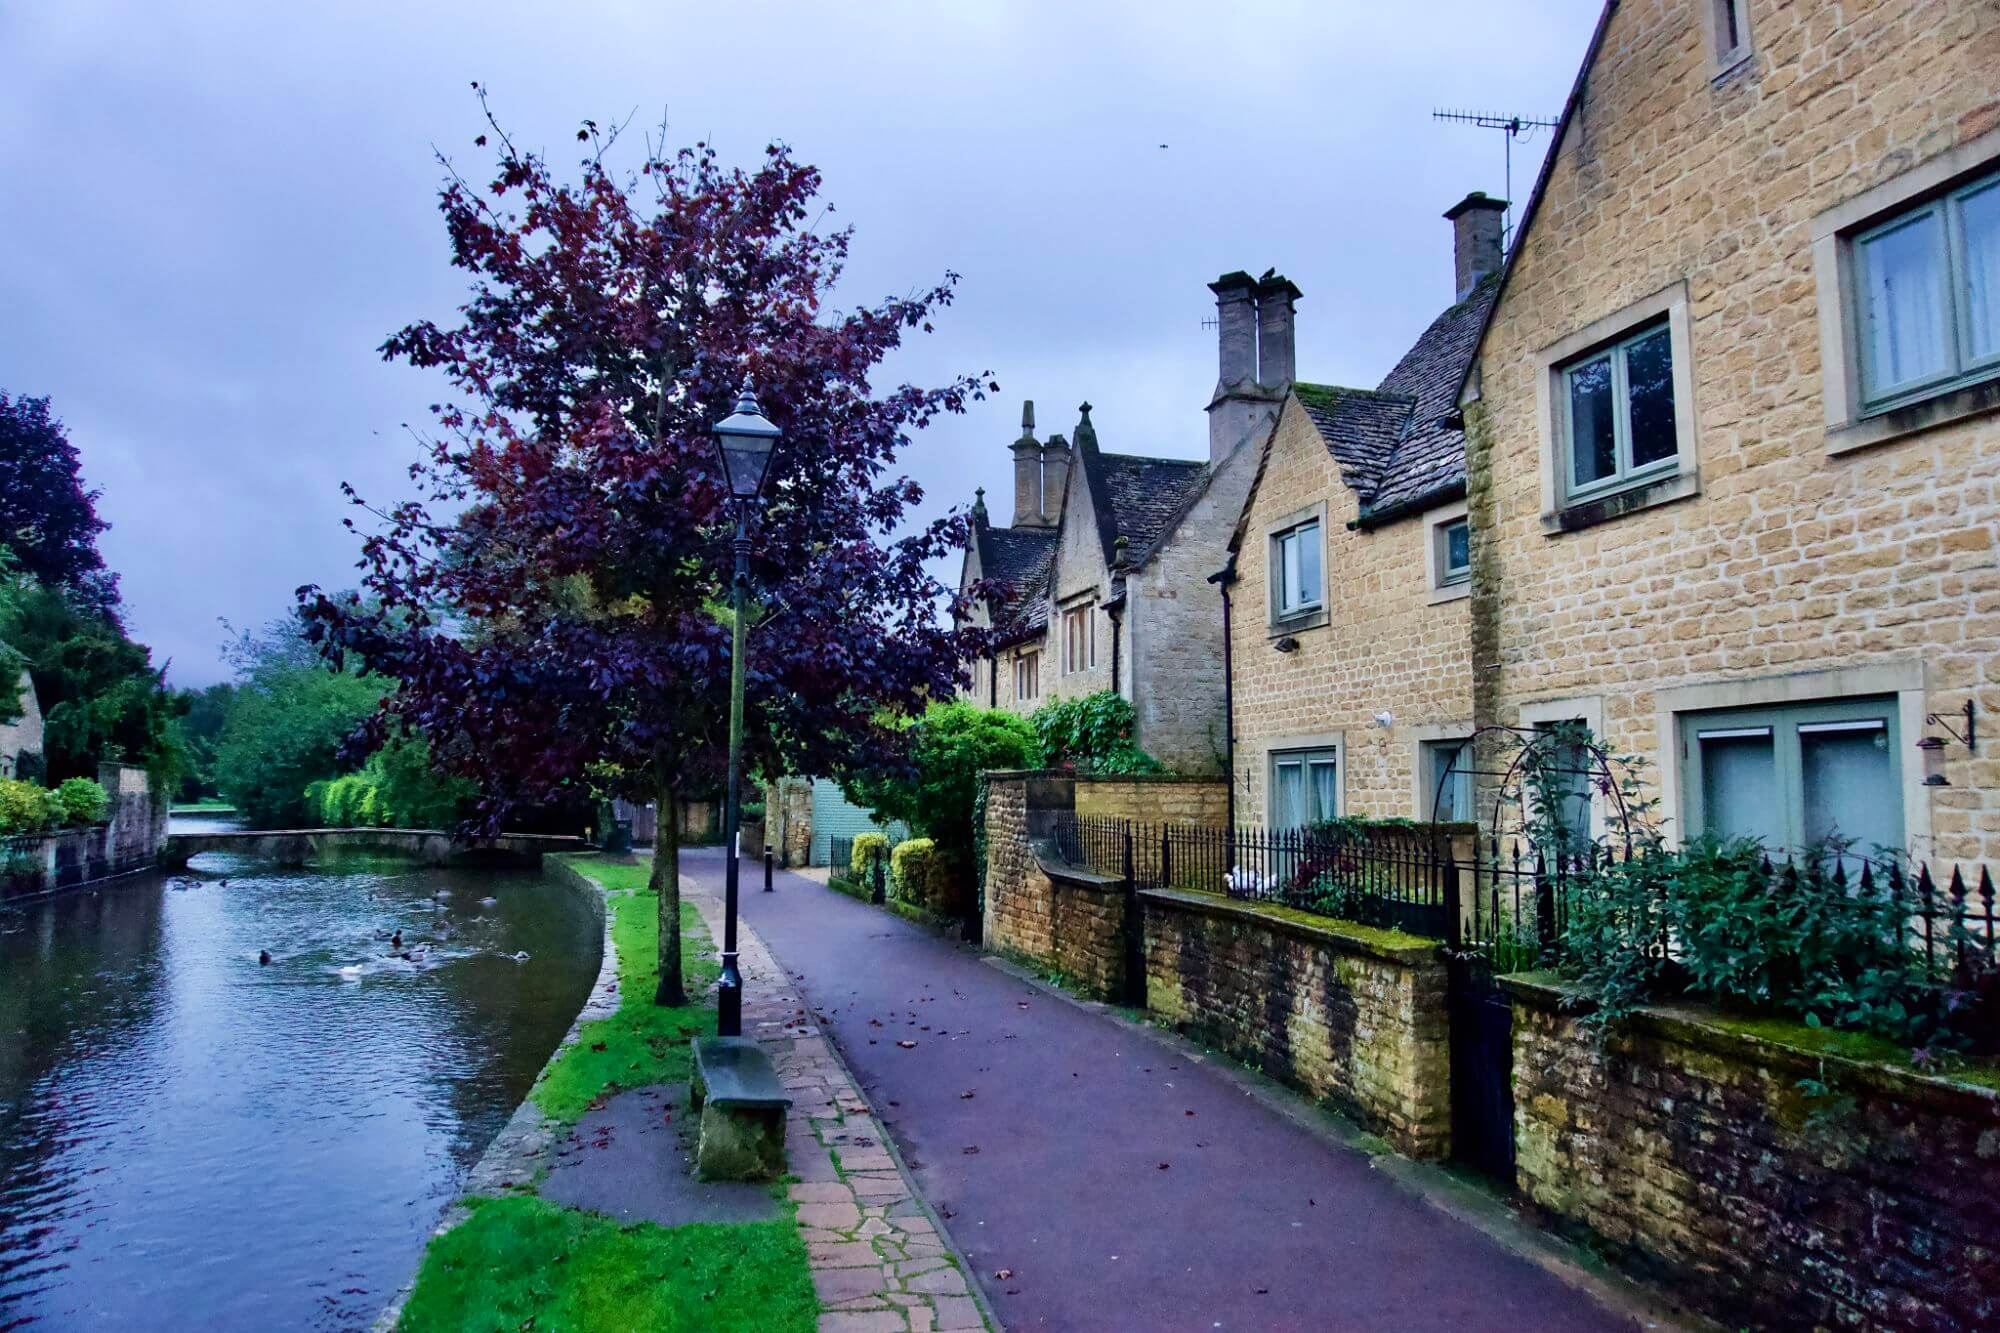 Bourton-on-the-Water, a village in the Cotswolds